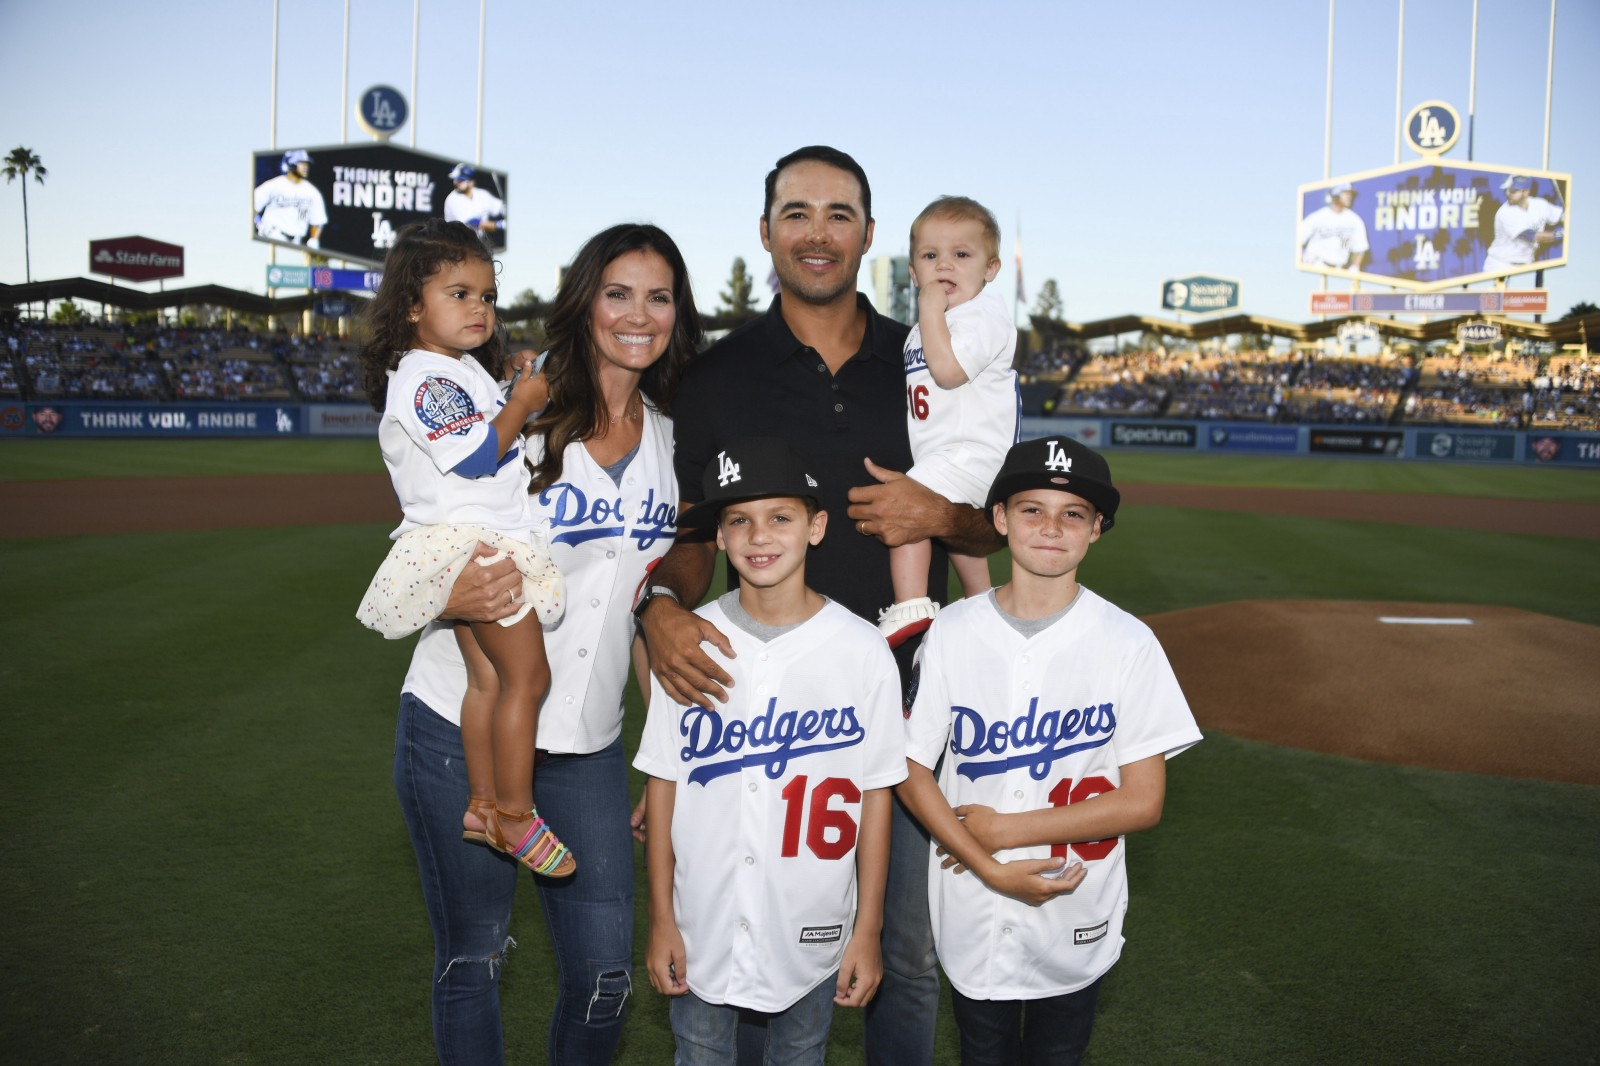 Thanks For Memories Andre >> After 12 Years In La Dodgers Honor Andre Ethier At Retirement Ceremony